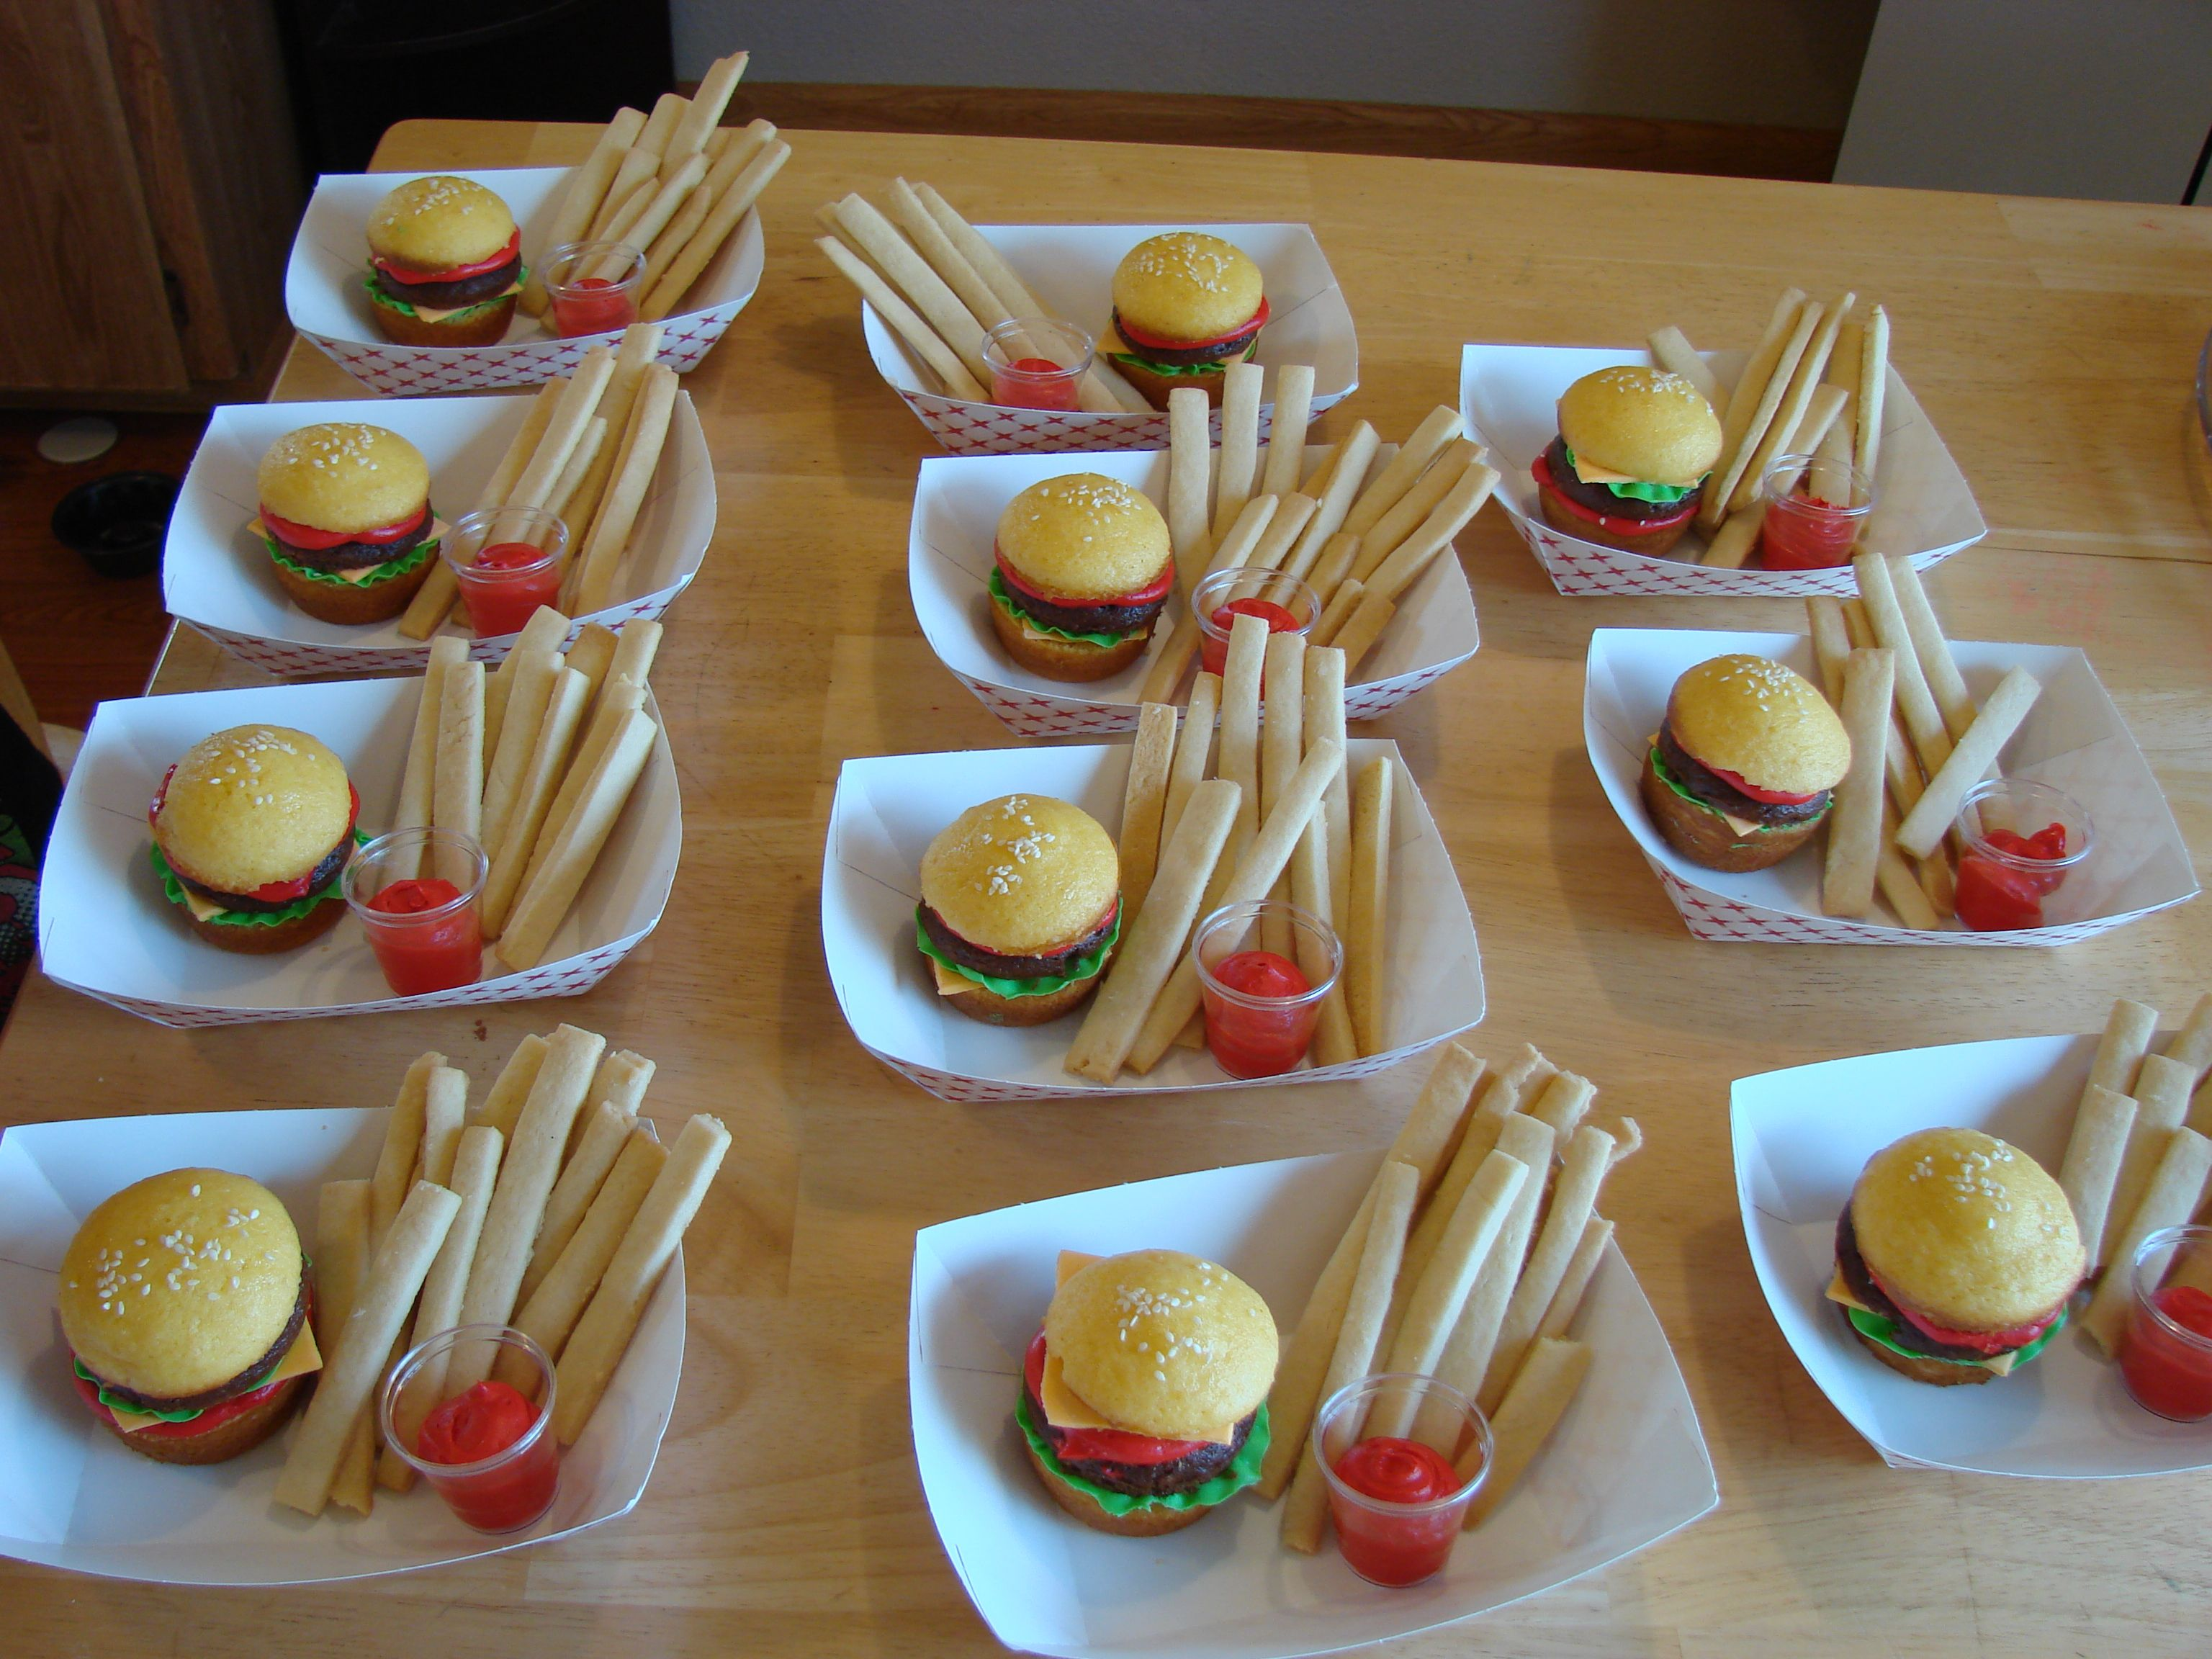 Cheeseburger and fries cupcakes | My own creations in 2019 ...